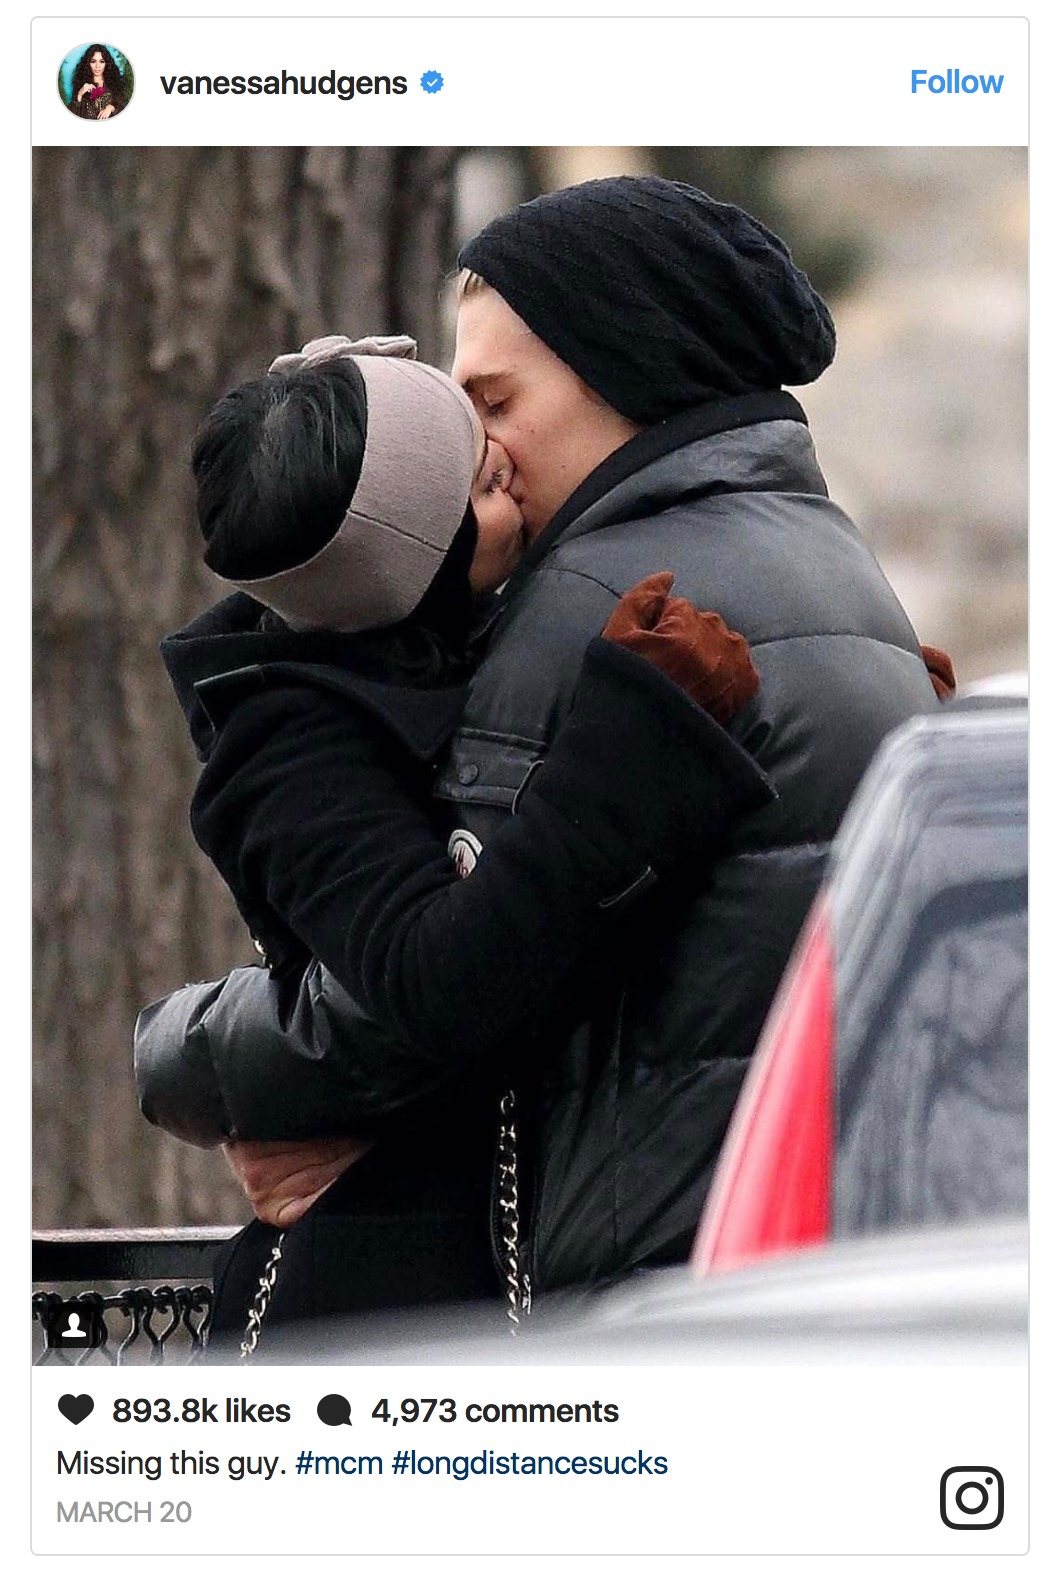 Vanessa Hudgens and Austin Butler look too cute together. The difference in their height is what makes them cute.